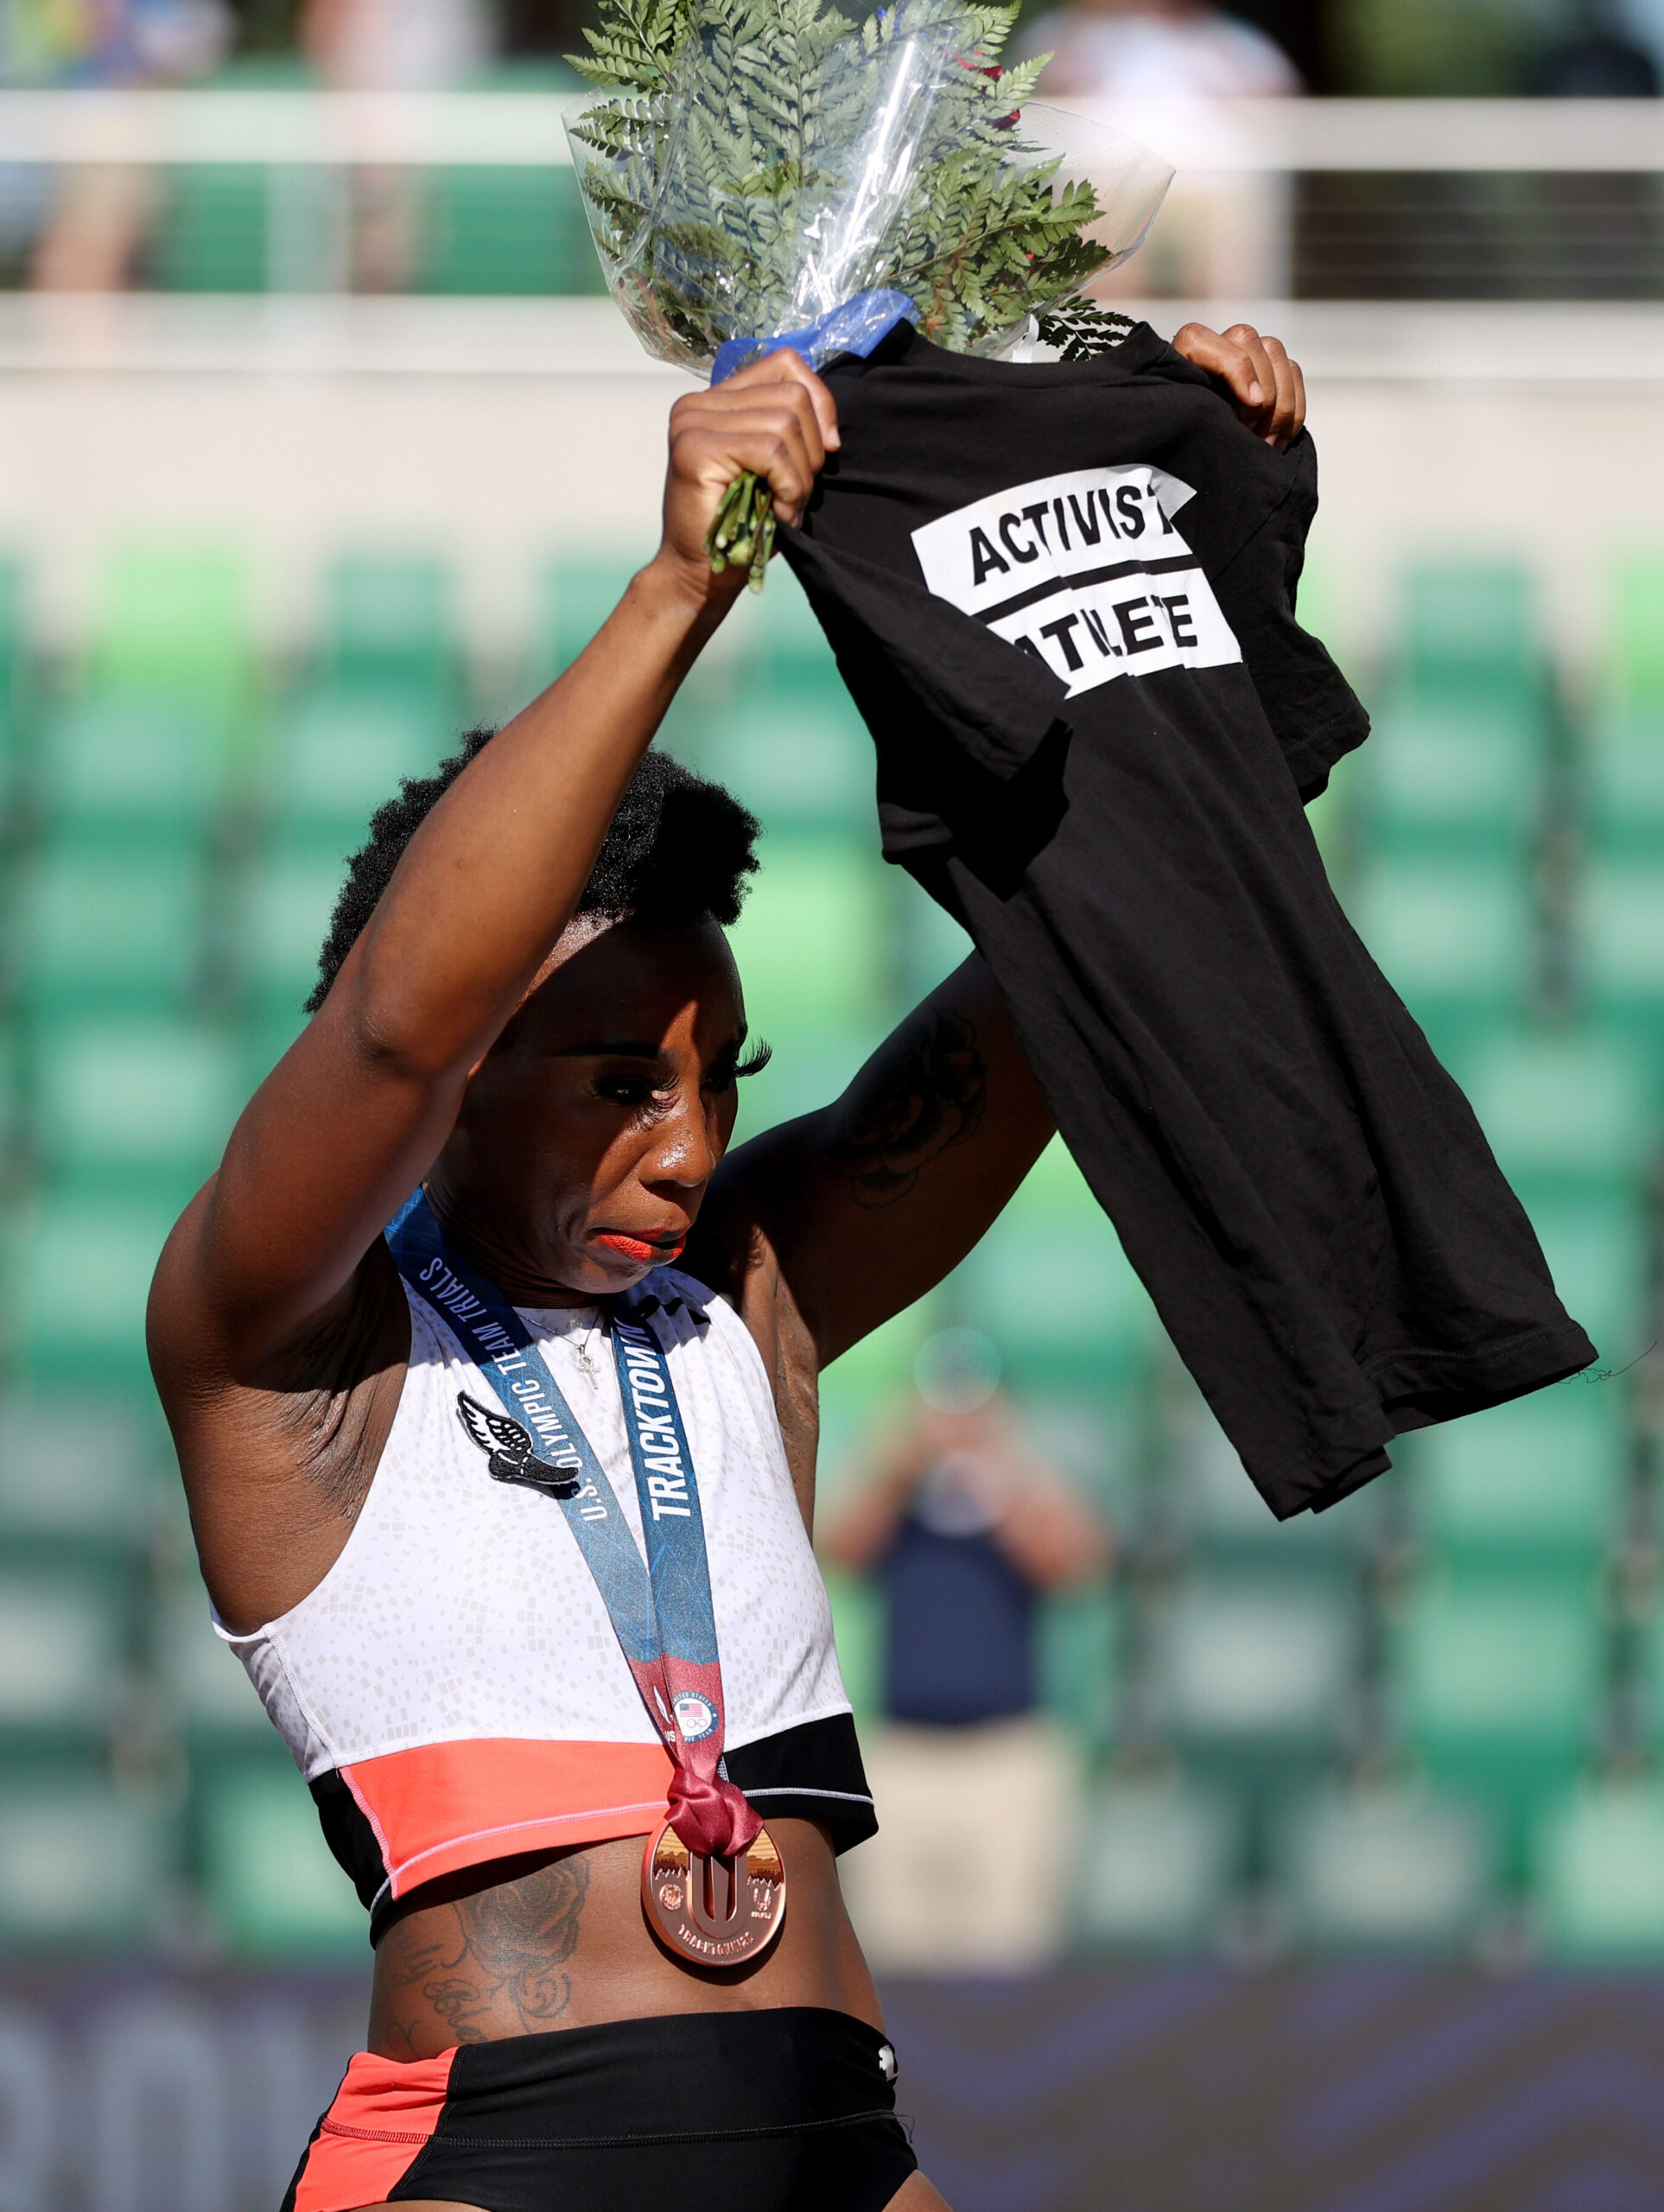 <i>Patrick Smith/Getty Images North America/Getty Images</i><br/>Gwen Berry holds up a shirt reading